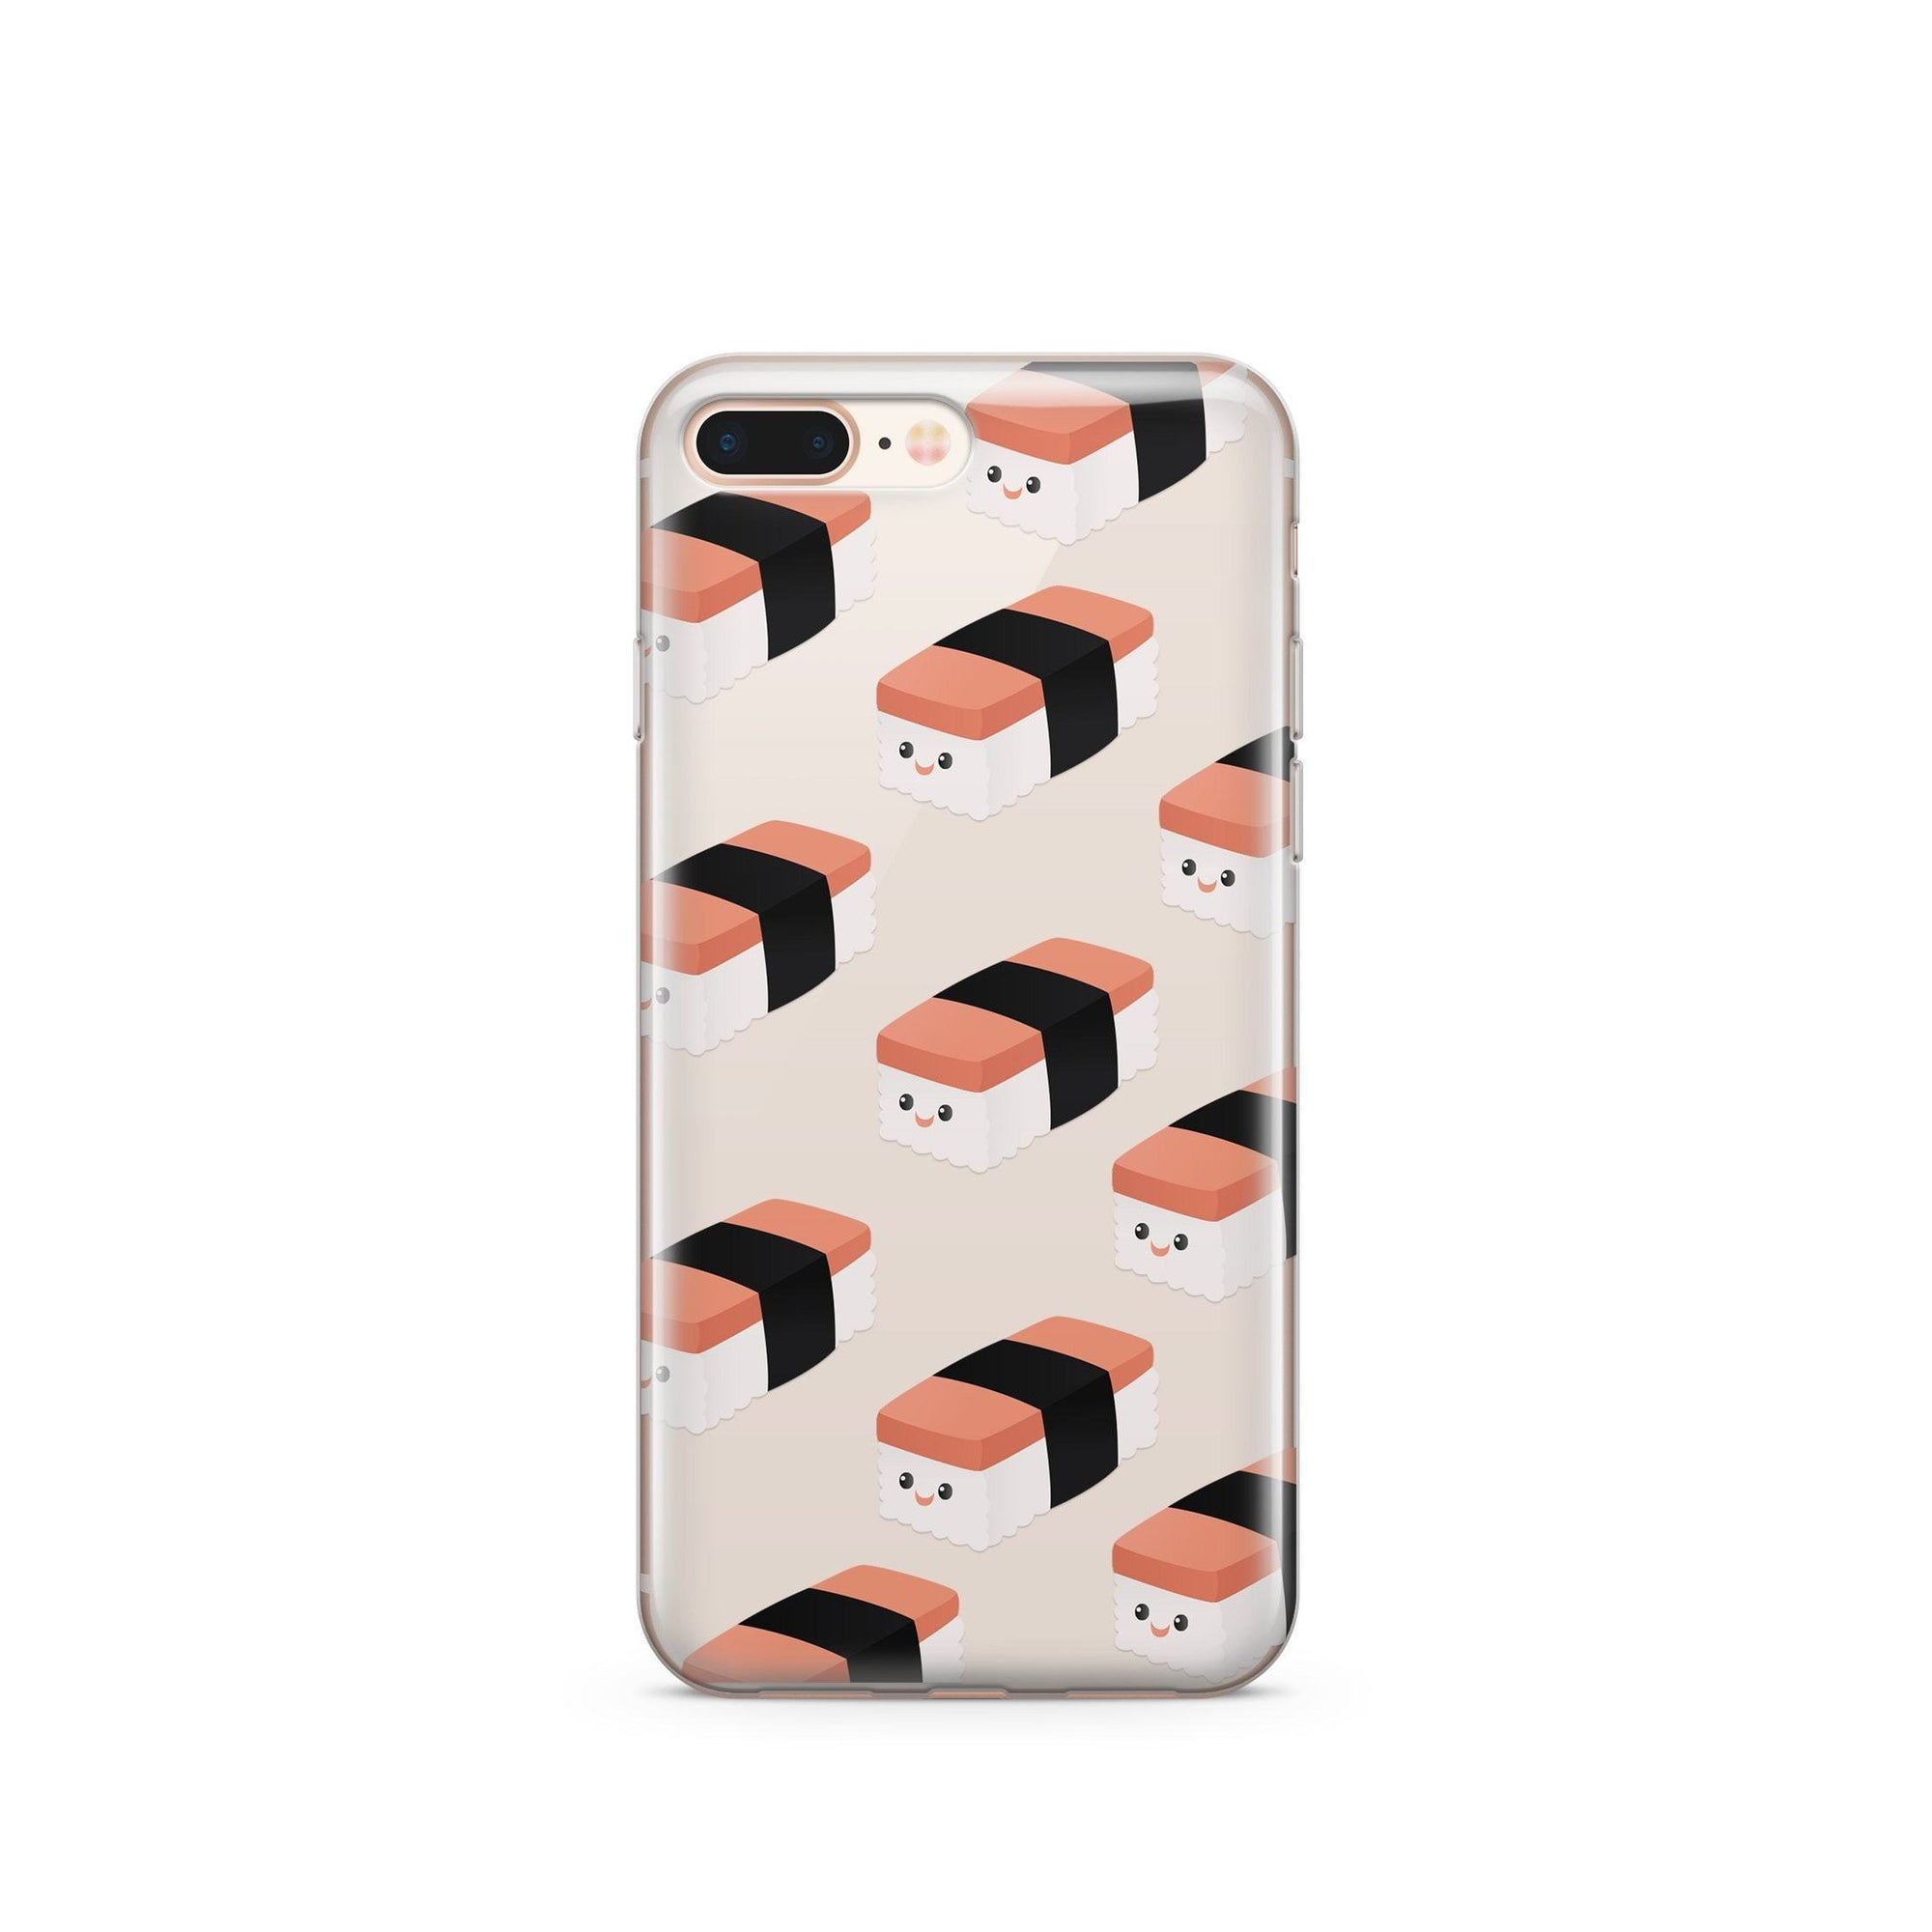 Spam Musubi Clear Case Cover Milkyway